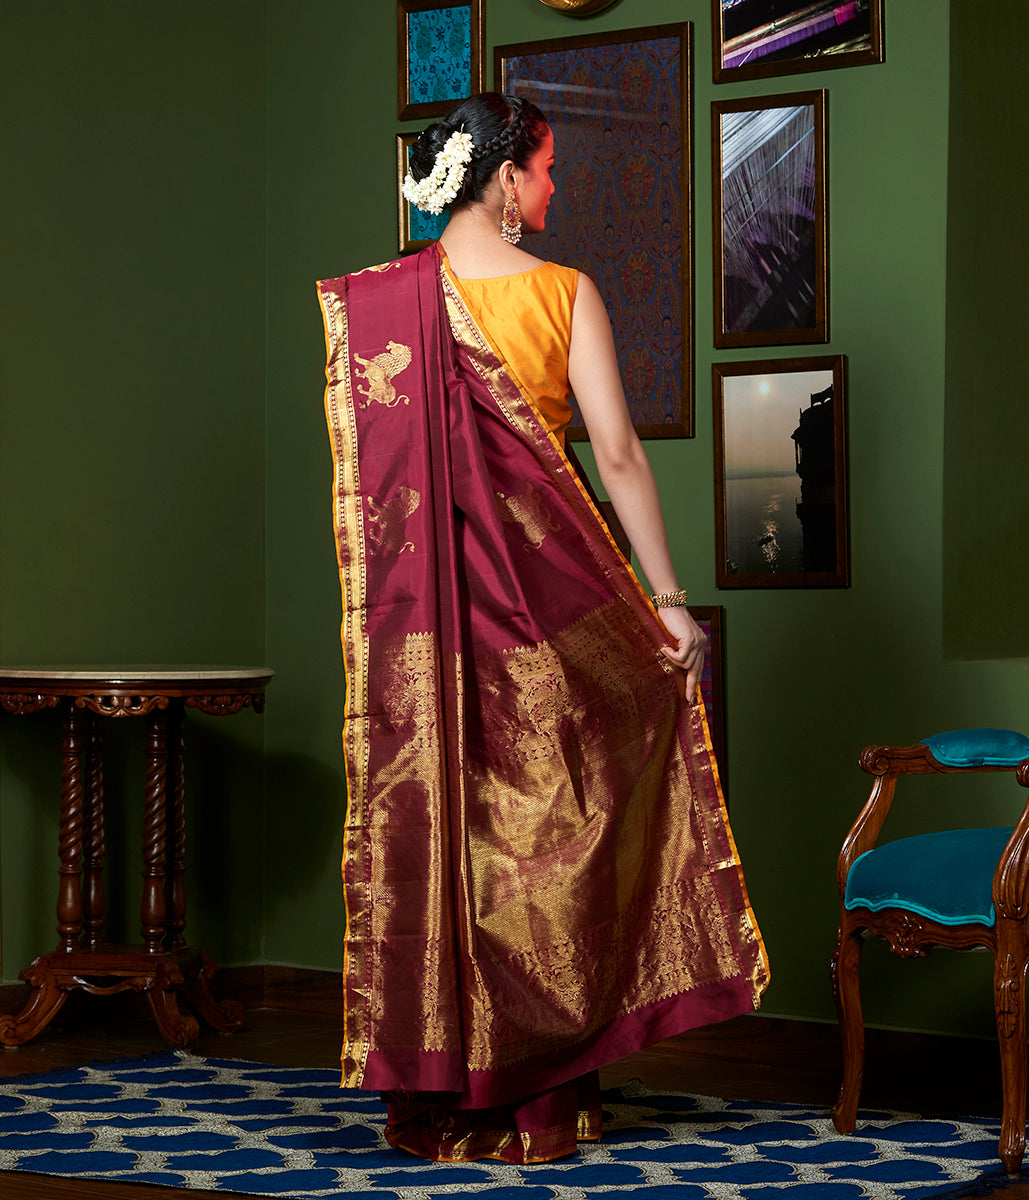 Handwoven Mahroon Kanjivaram Silk Saree with Lions woven in Gold Zari